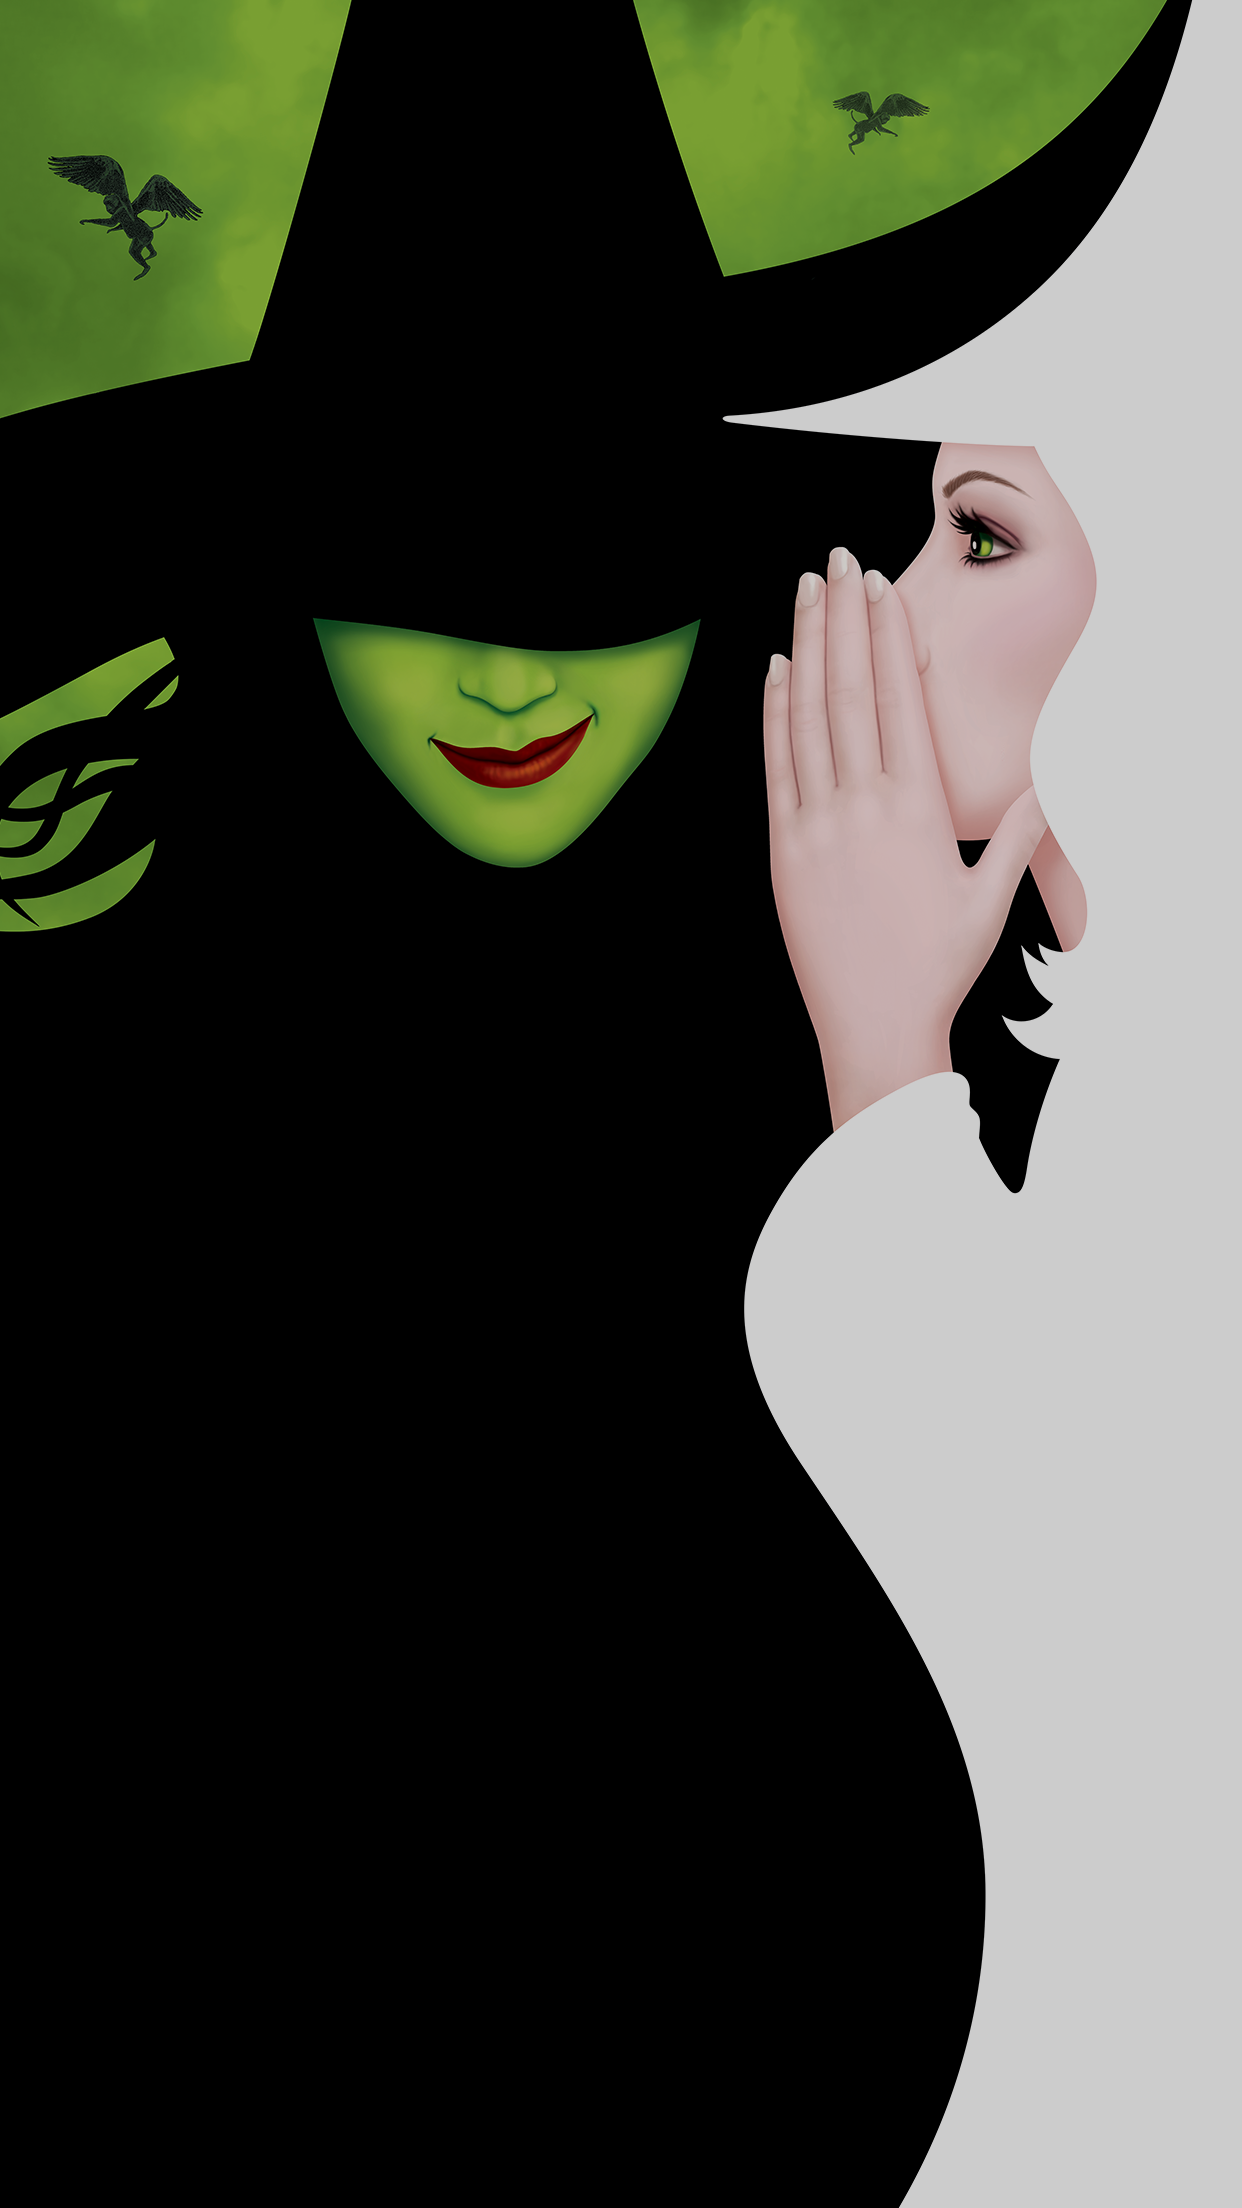 wicked iphone wallpaper